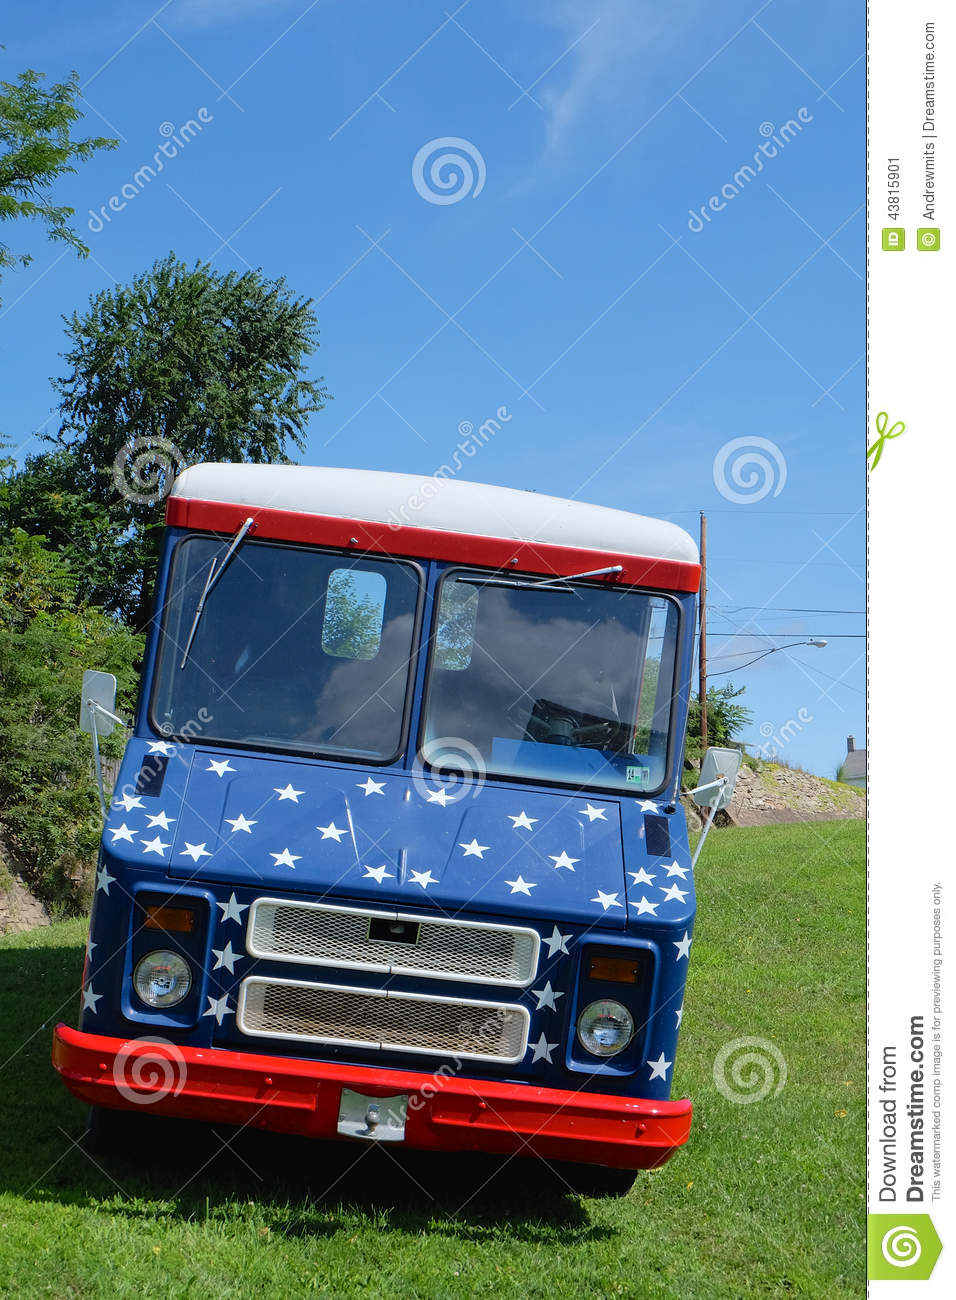 c1ada7e94 Patriotic Van stock image. Image of custom